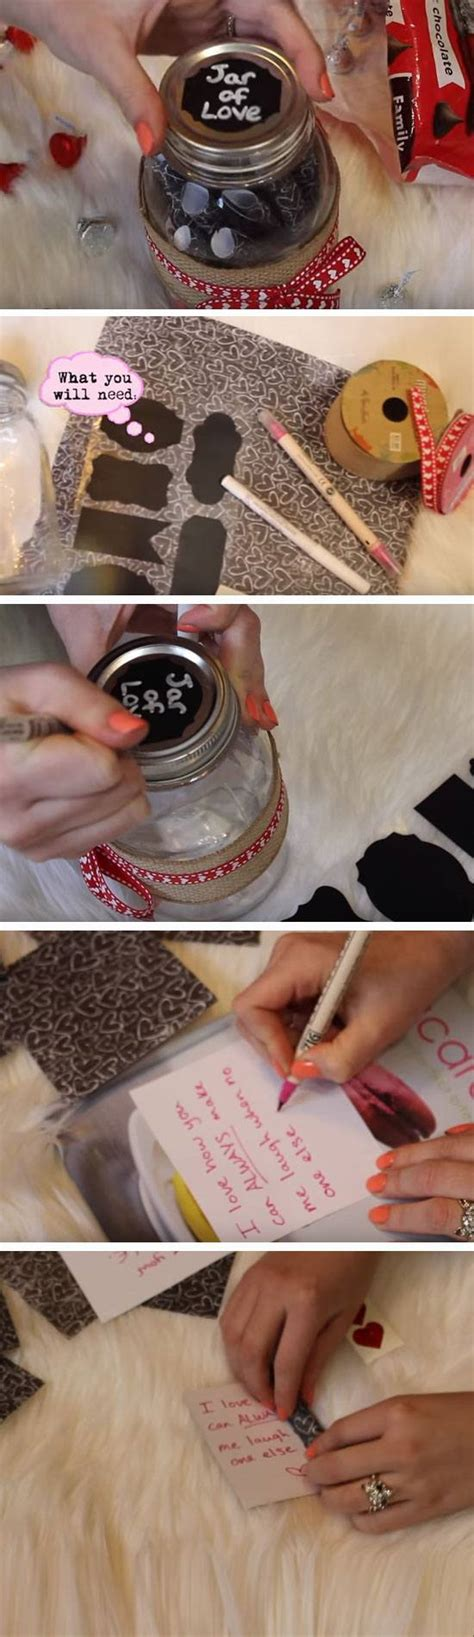 diy gift ideas for him 23 diy anniversary gifts for him